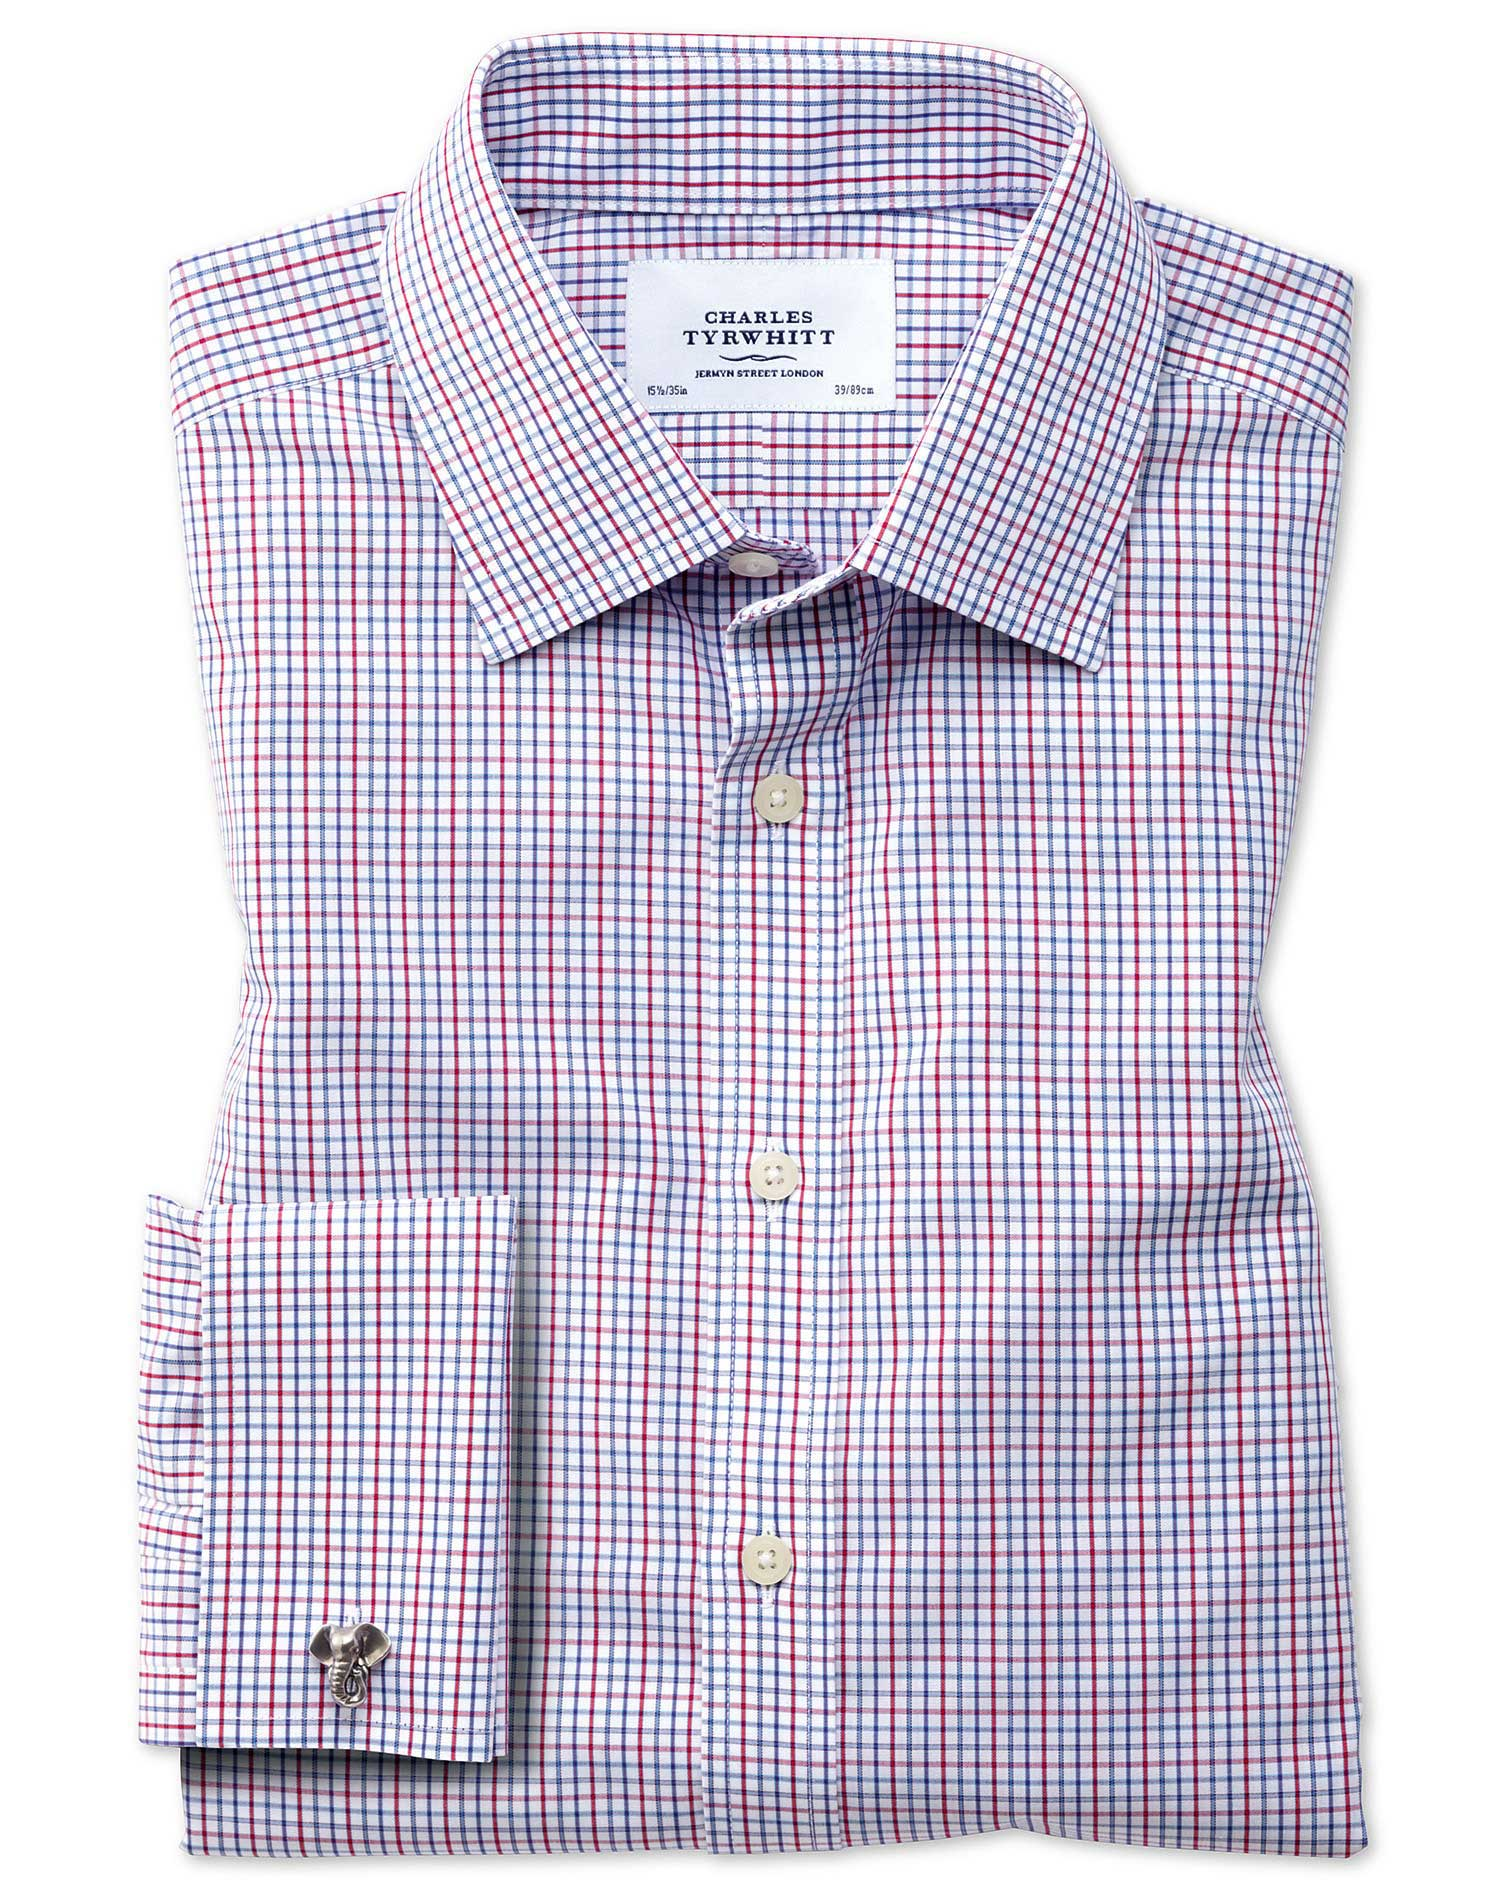 Classic Fit Non-Iron Grid Check Multi Cotton Formal Shirt Single Cuff Size 20/37 by Charles Tyrwhitt